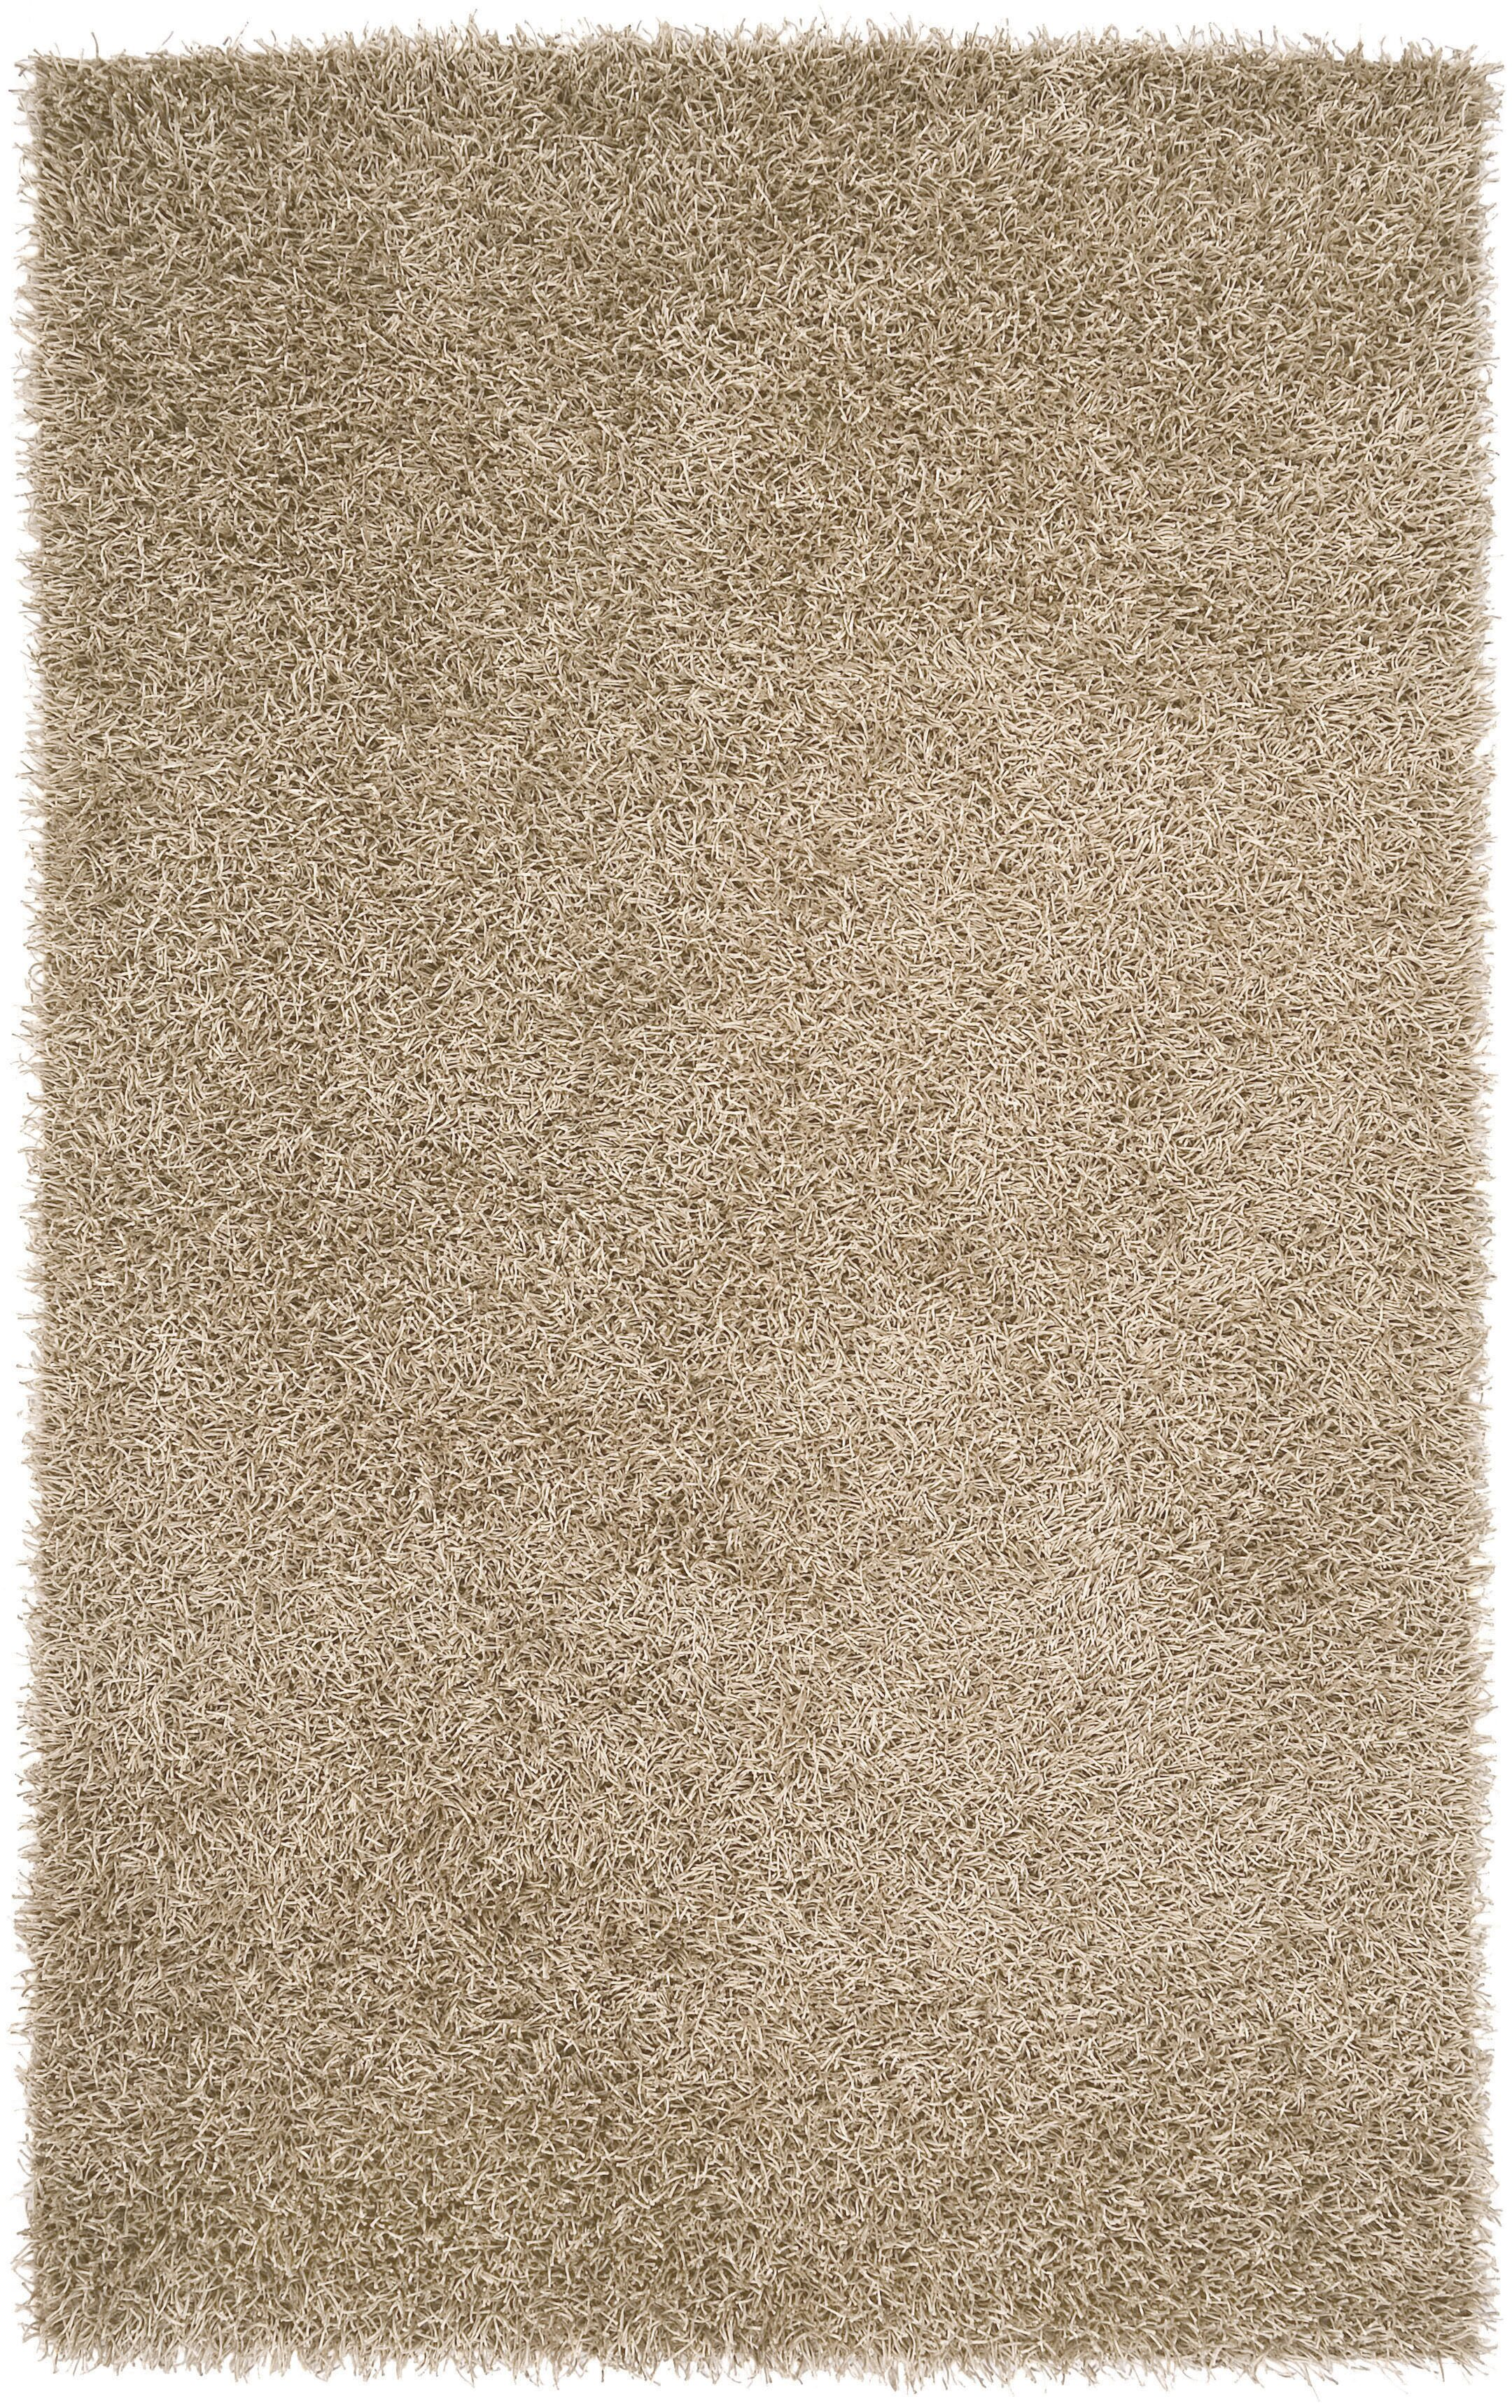 Bonomo Beige Area Rug Rug Size: Rectangle 3'6